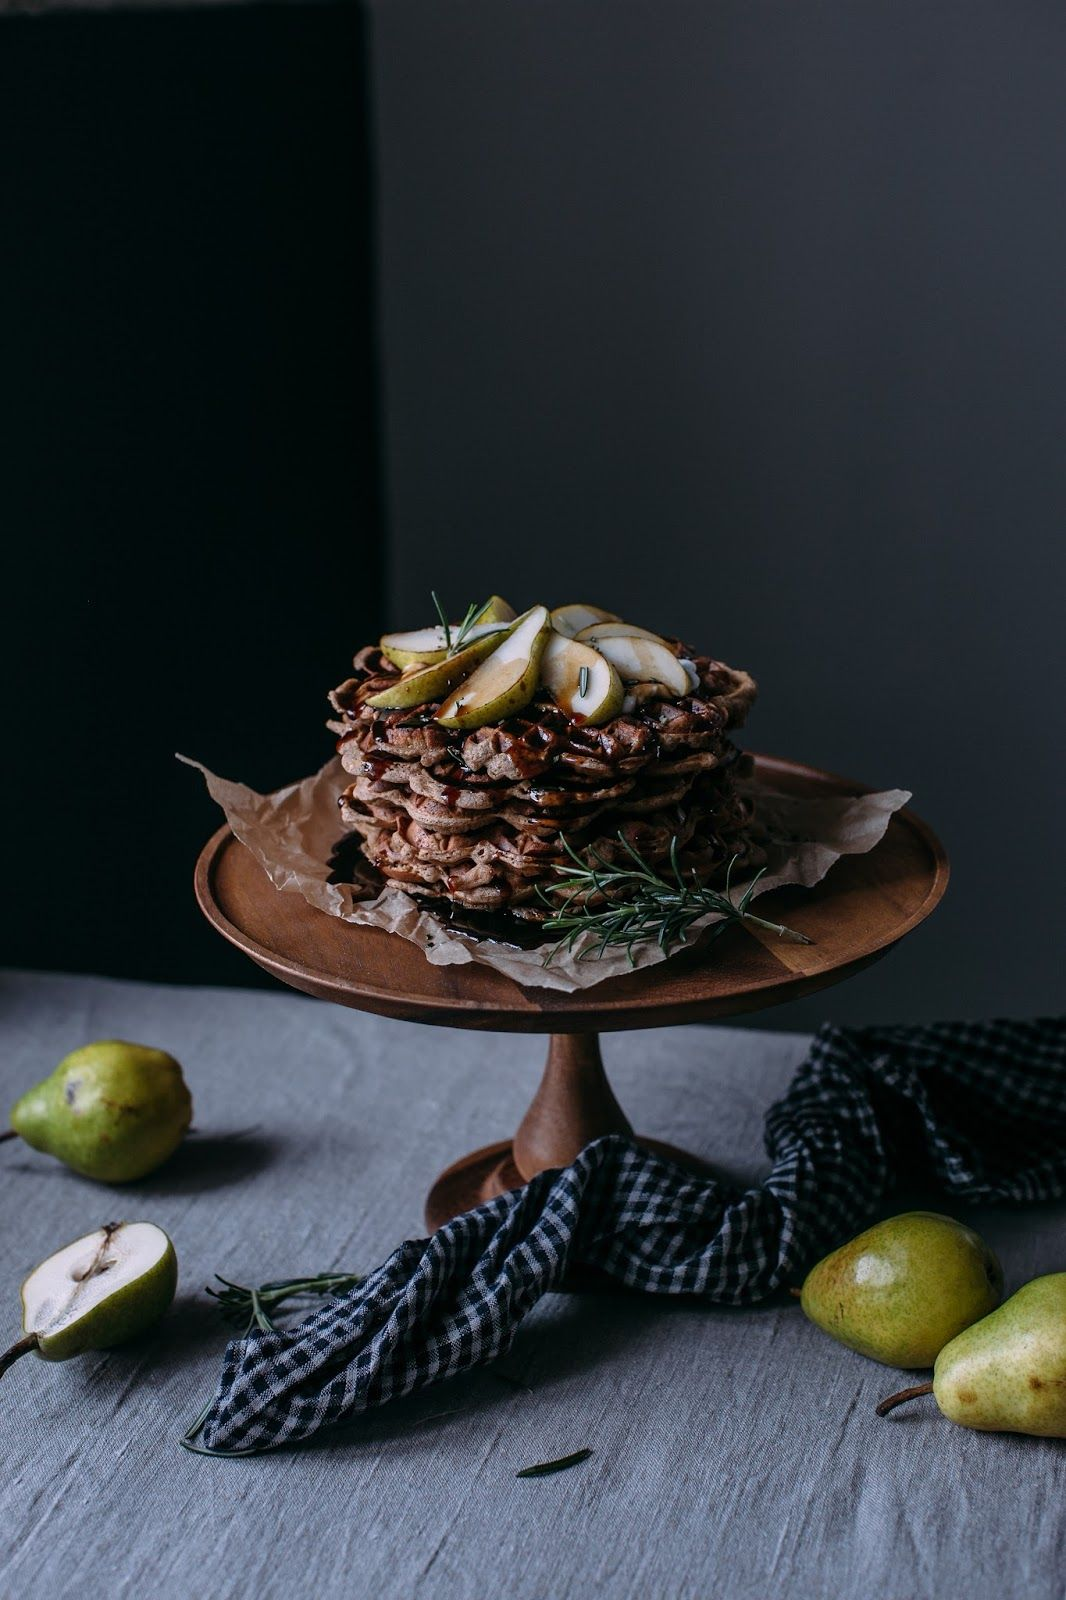 Gluten-free Apple-Cinnamon Waffles with Pears and a Tea infused Rosmary – Coconut Sugar Syrup